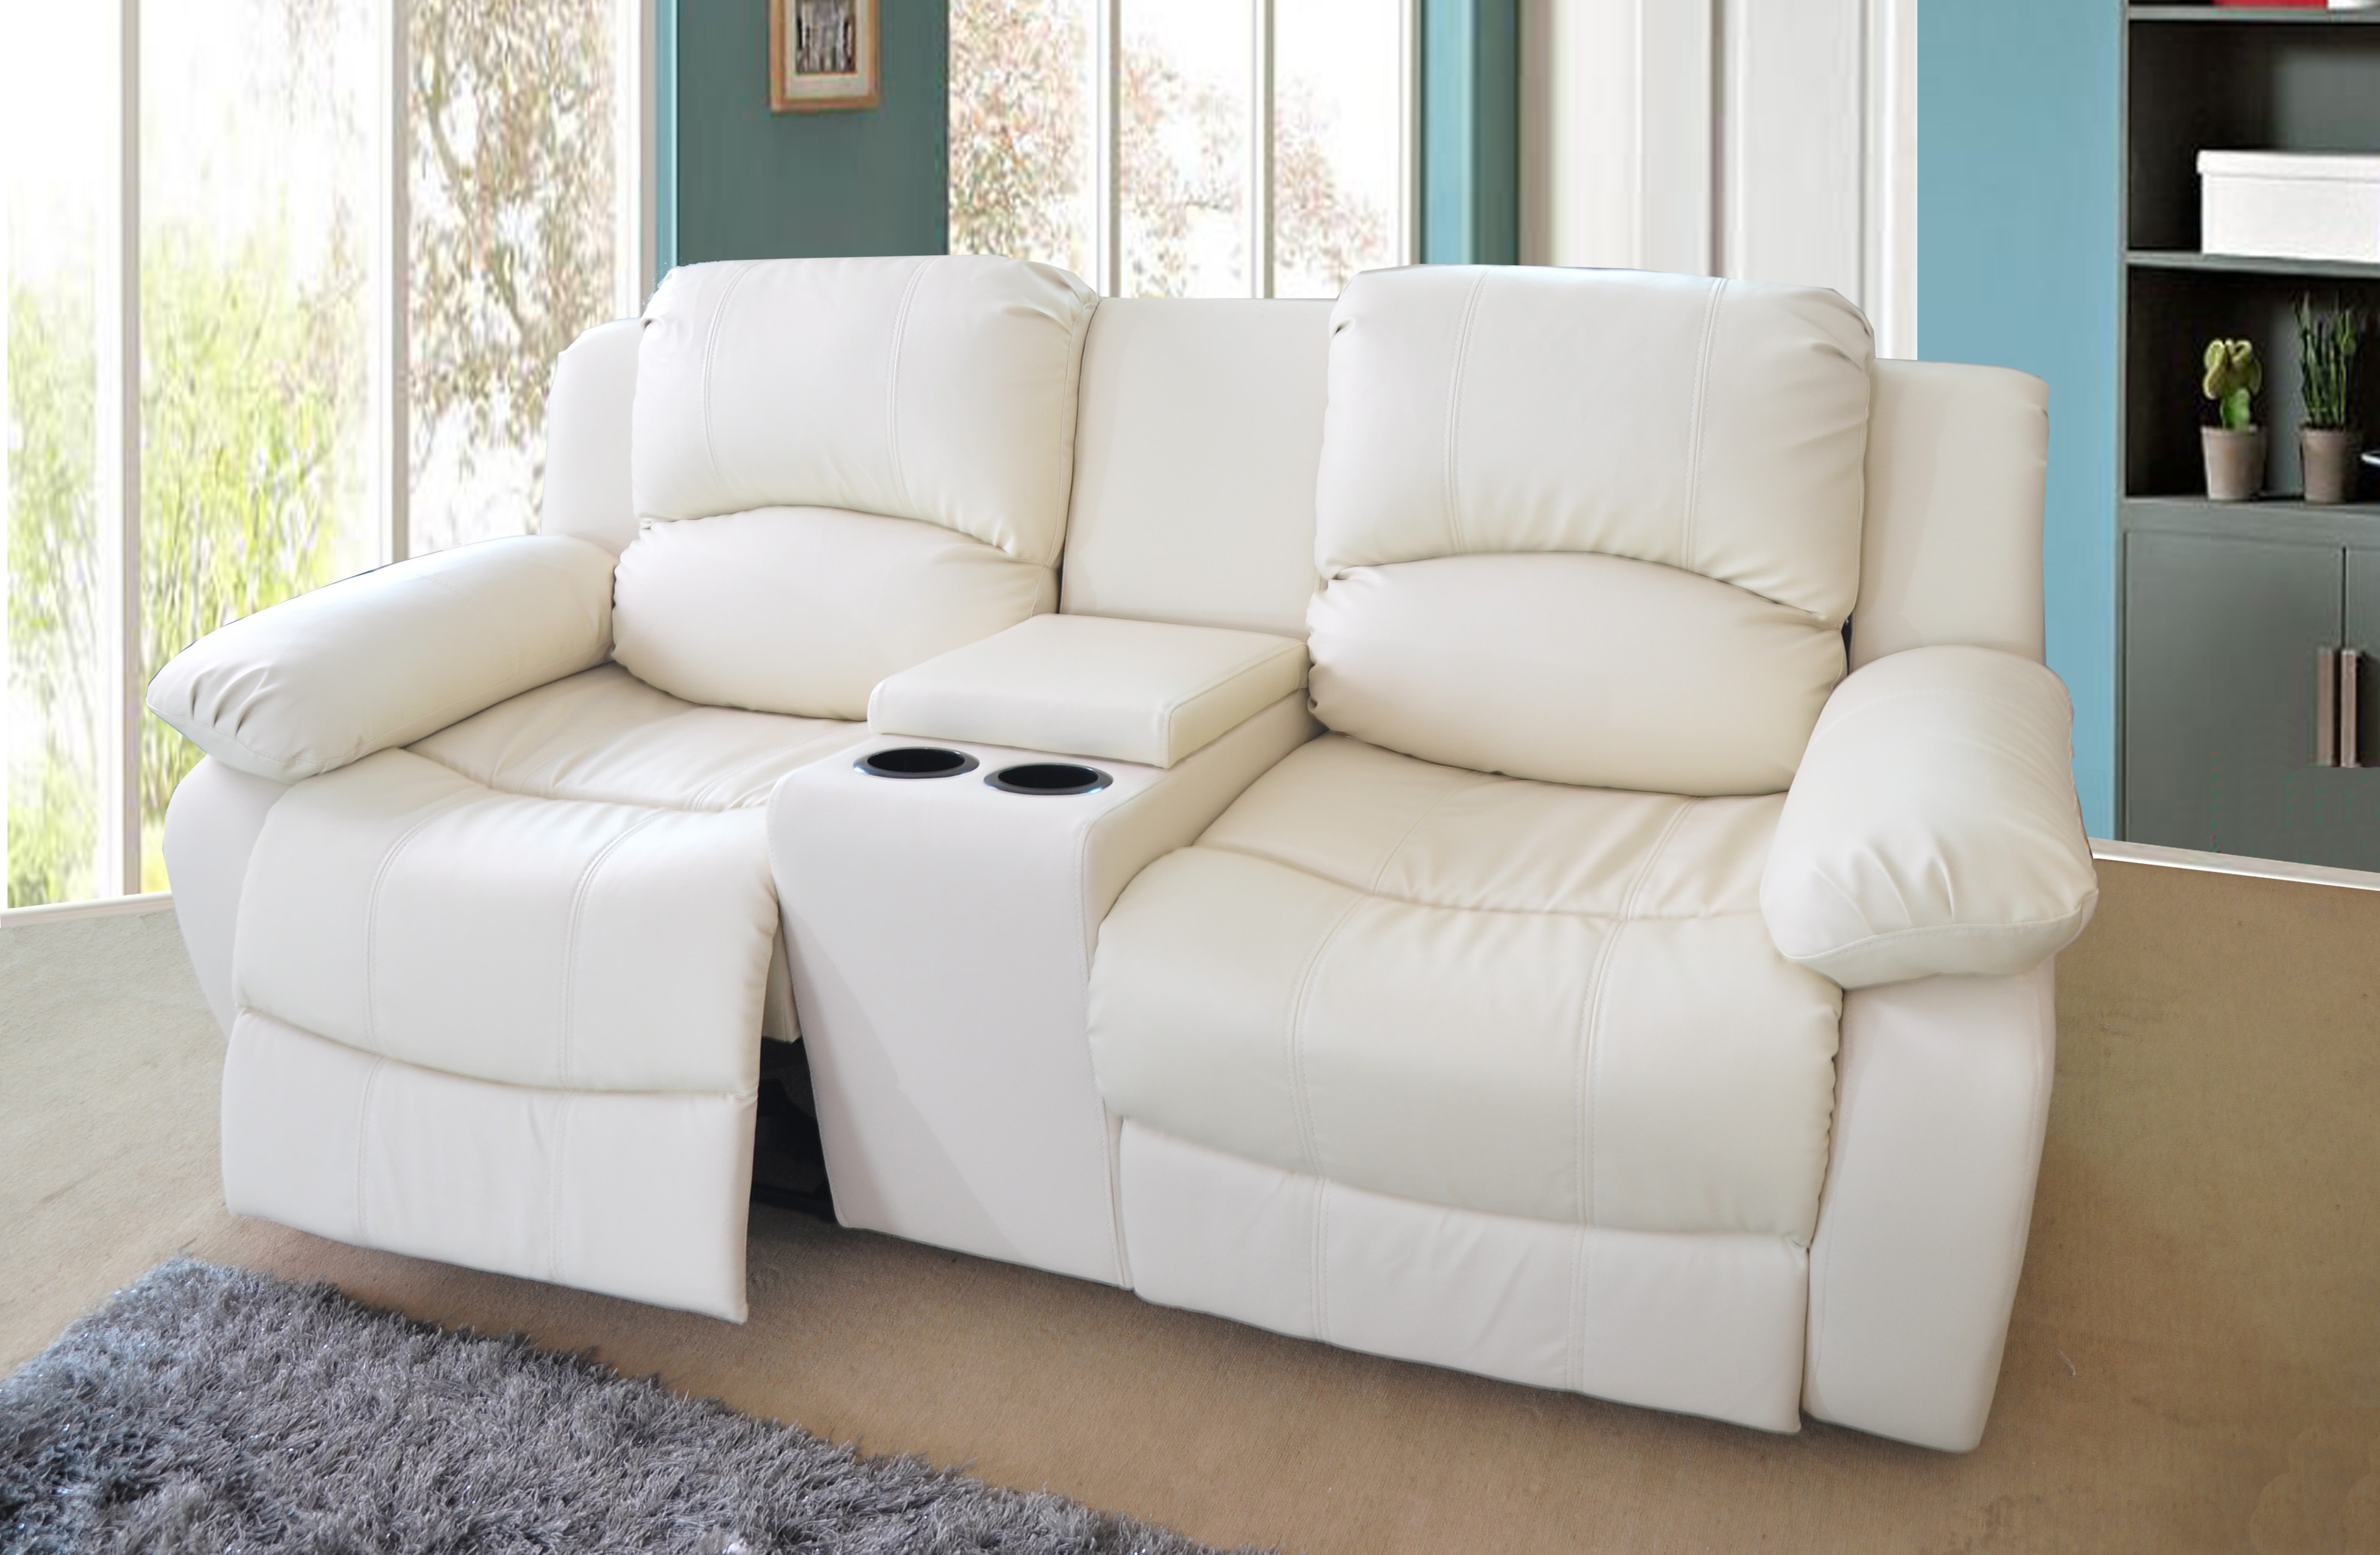 VALENCIA 2 SEATER BONDED LEATHER RECLINER SOFA WITH  : 72222consoleincream from www.lovesofas.co.uk size 3169 x 2070 jpeg 917kB